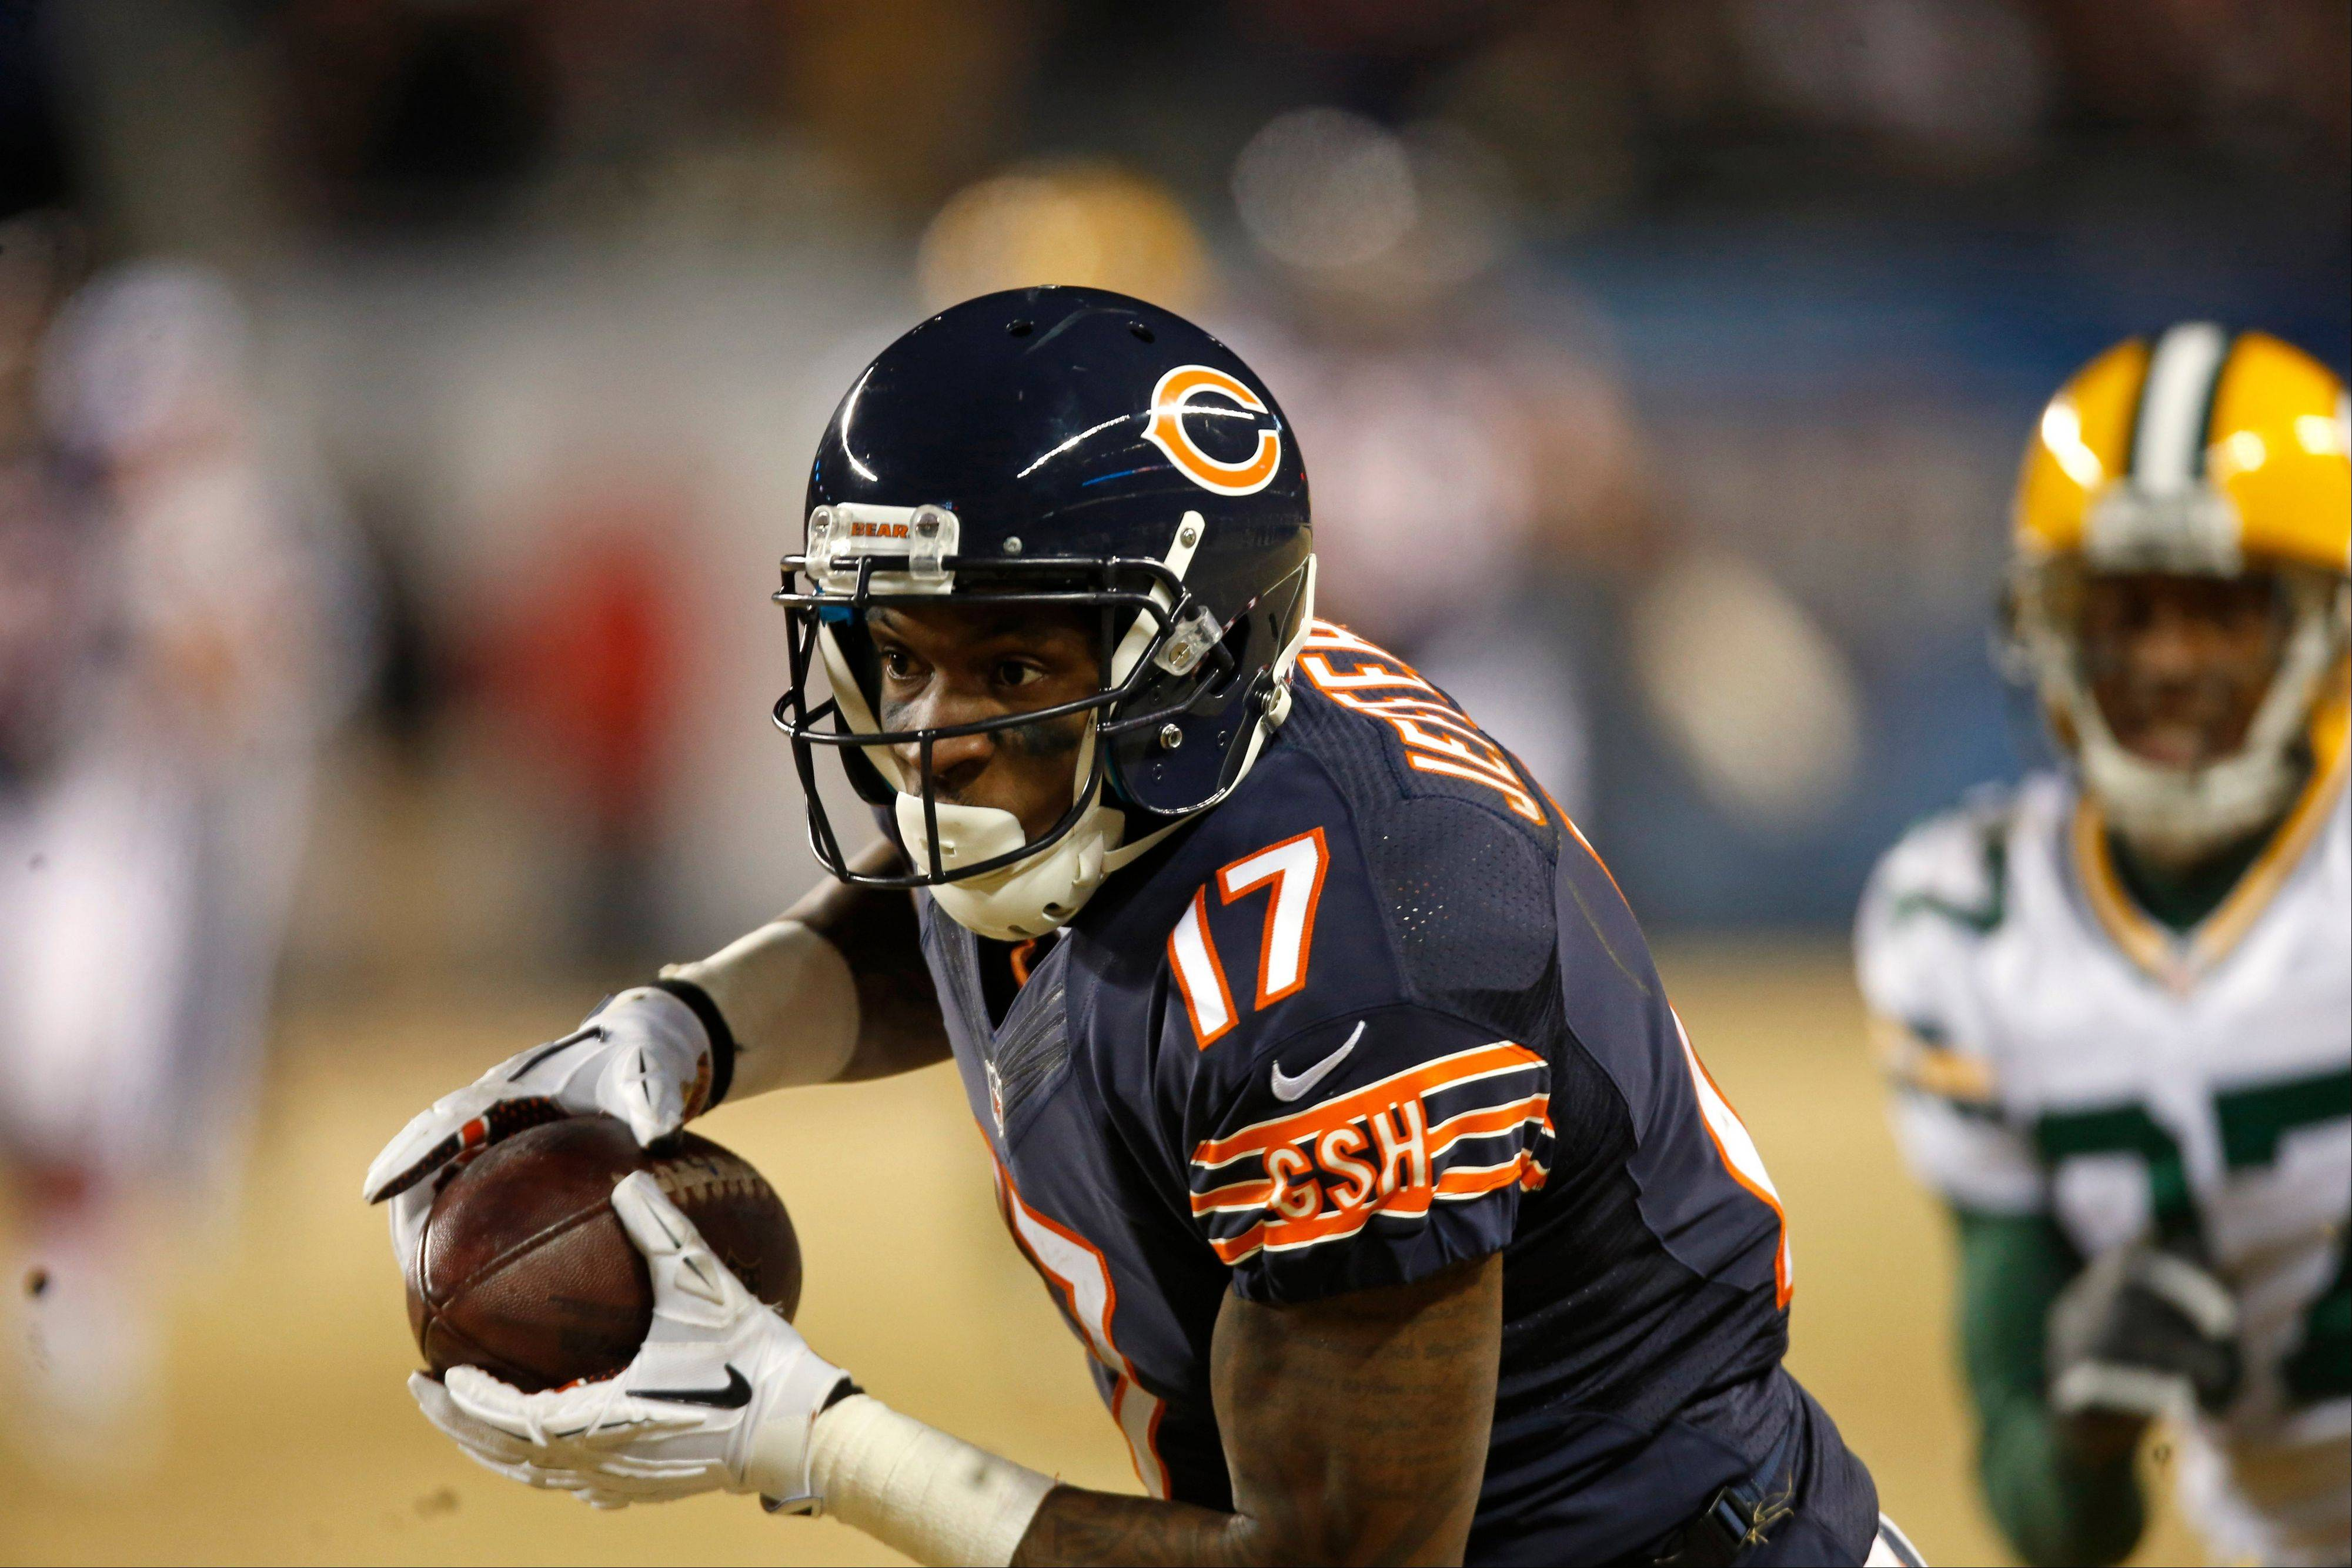 Bears wide receiver Alshon Jeffery (17) runs after making a catch against the Green Bay Packers during the second half of an NFL football game on Sunday, Dec. 29, 2013, in Chicago.